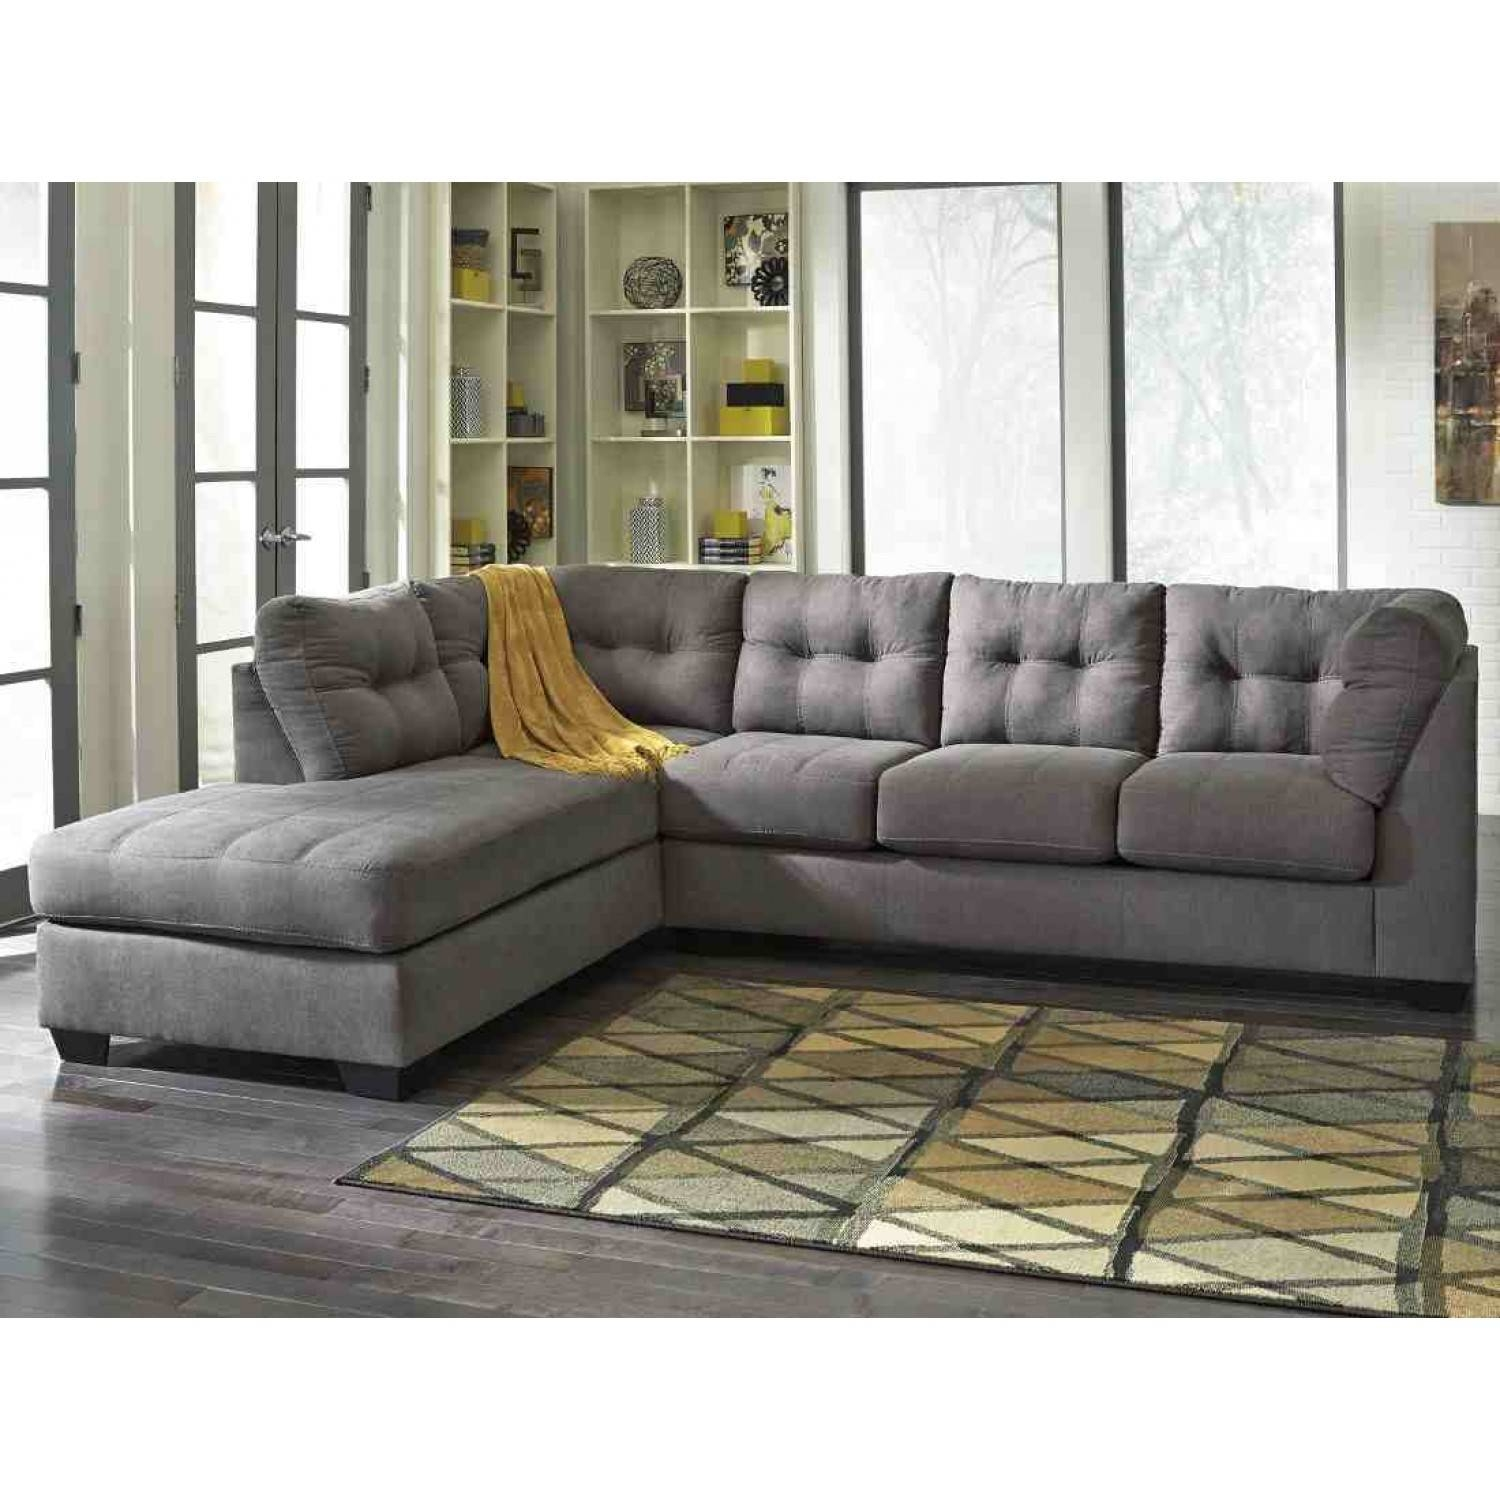 Ashley Furniture Maier Sectional In Charcoal | Local Furniture Outlet in Ashley Tufted Sofa (Image 4 of 30)